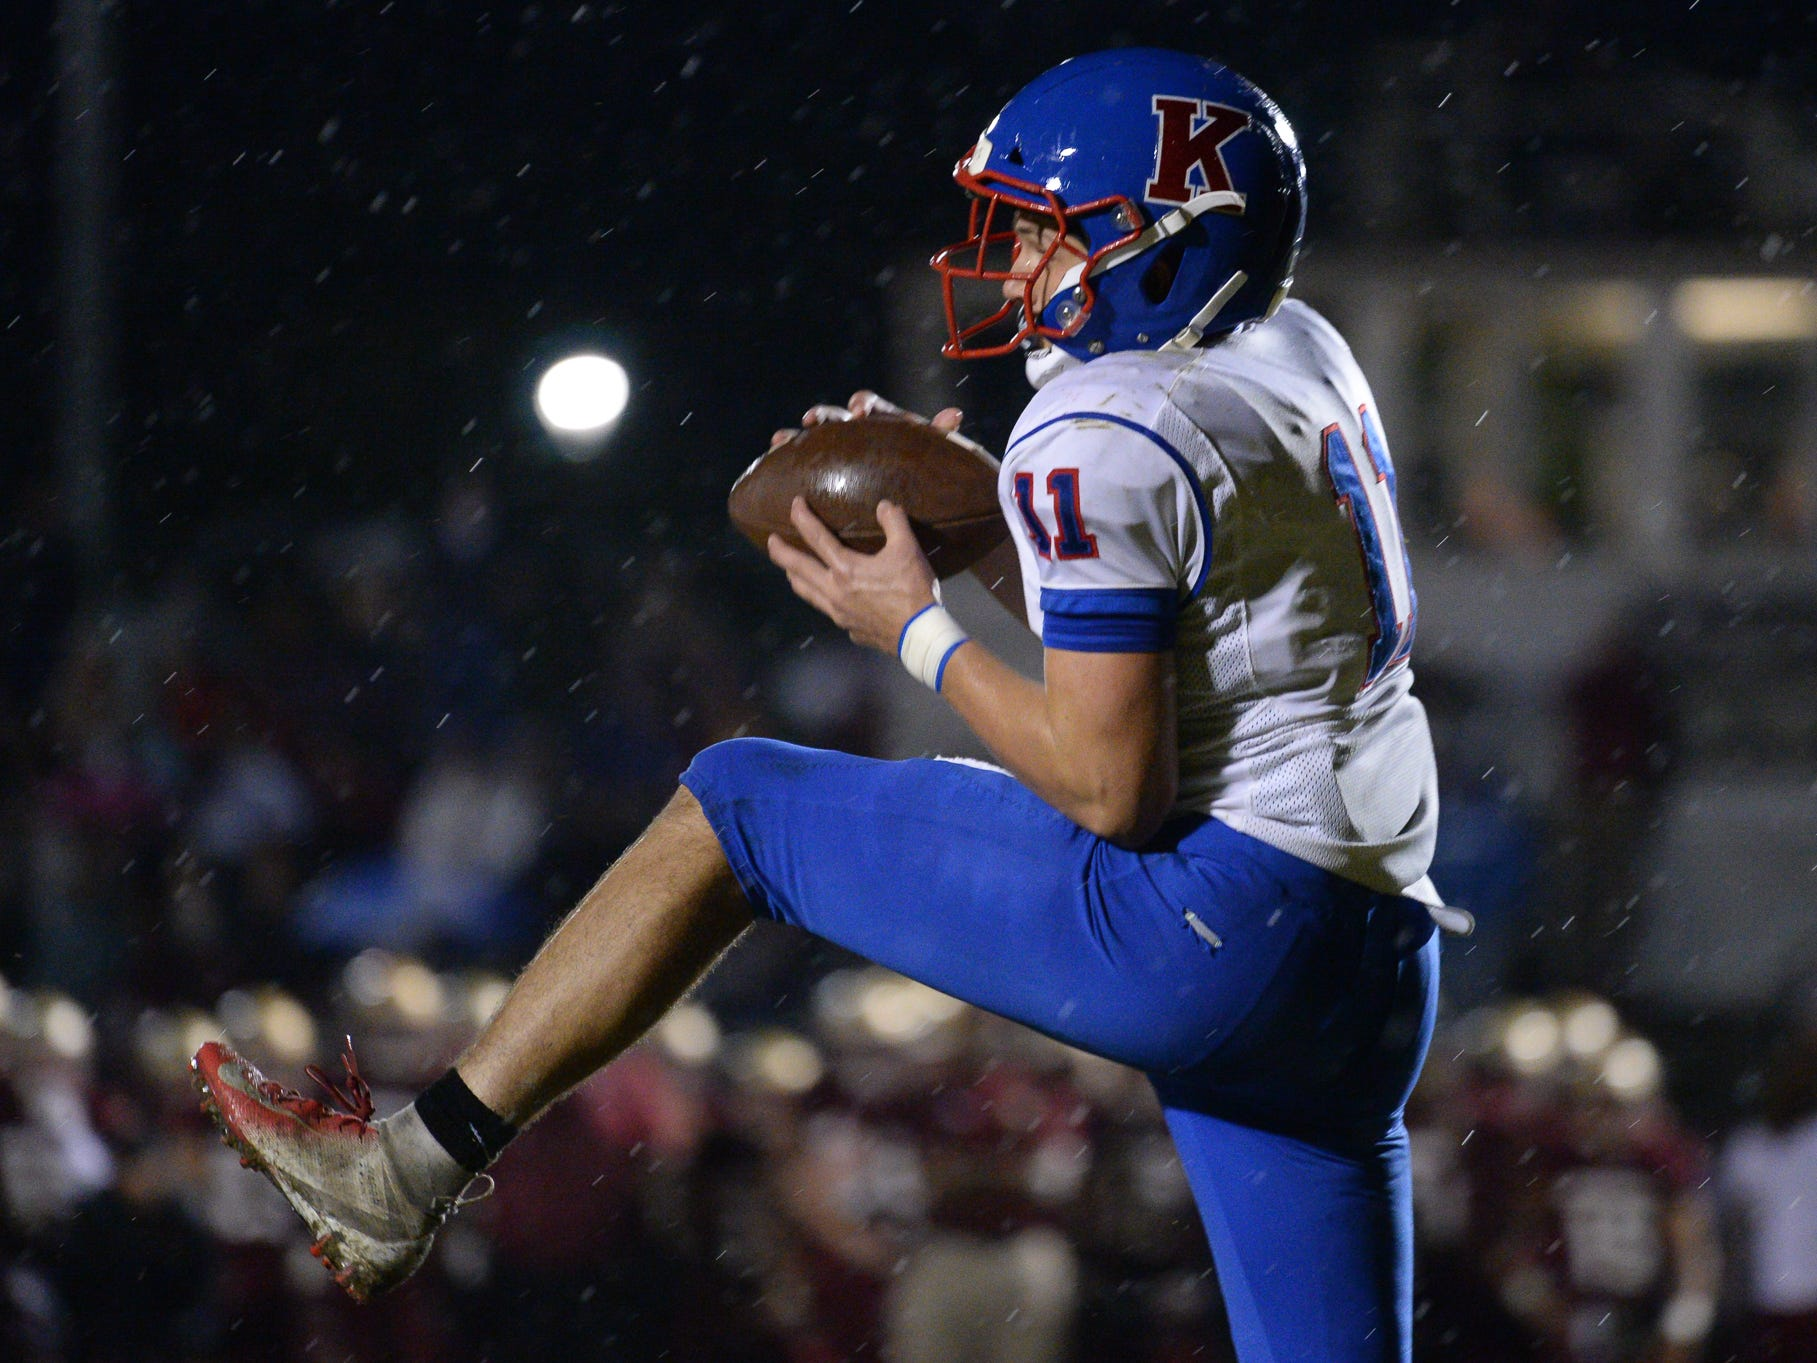 Cory Croteau catches a touchdown pass as the King's Academy Lions take on the Florida High Seminoles in a Class 3A state semifinal.